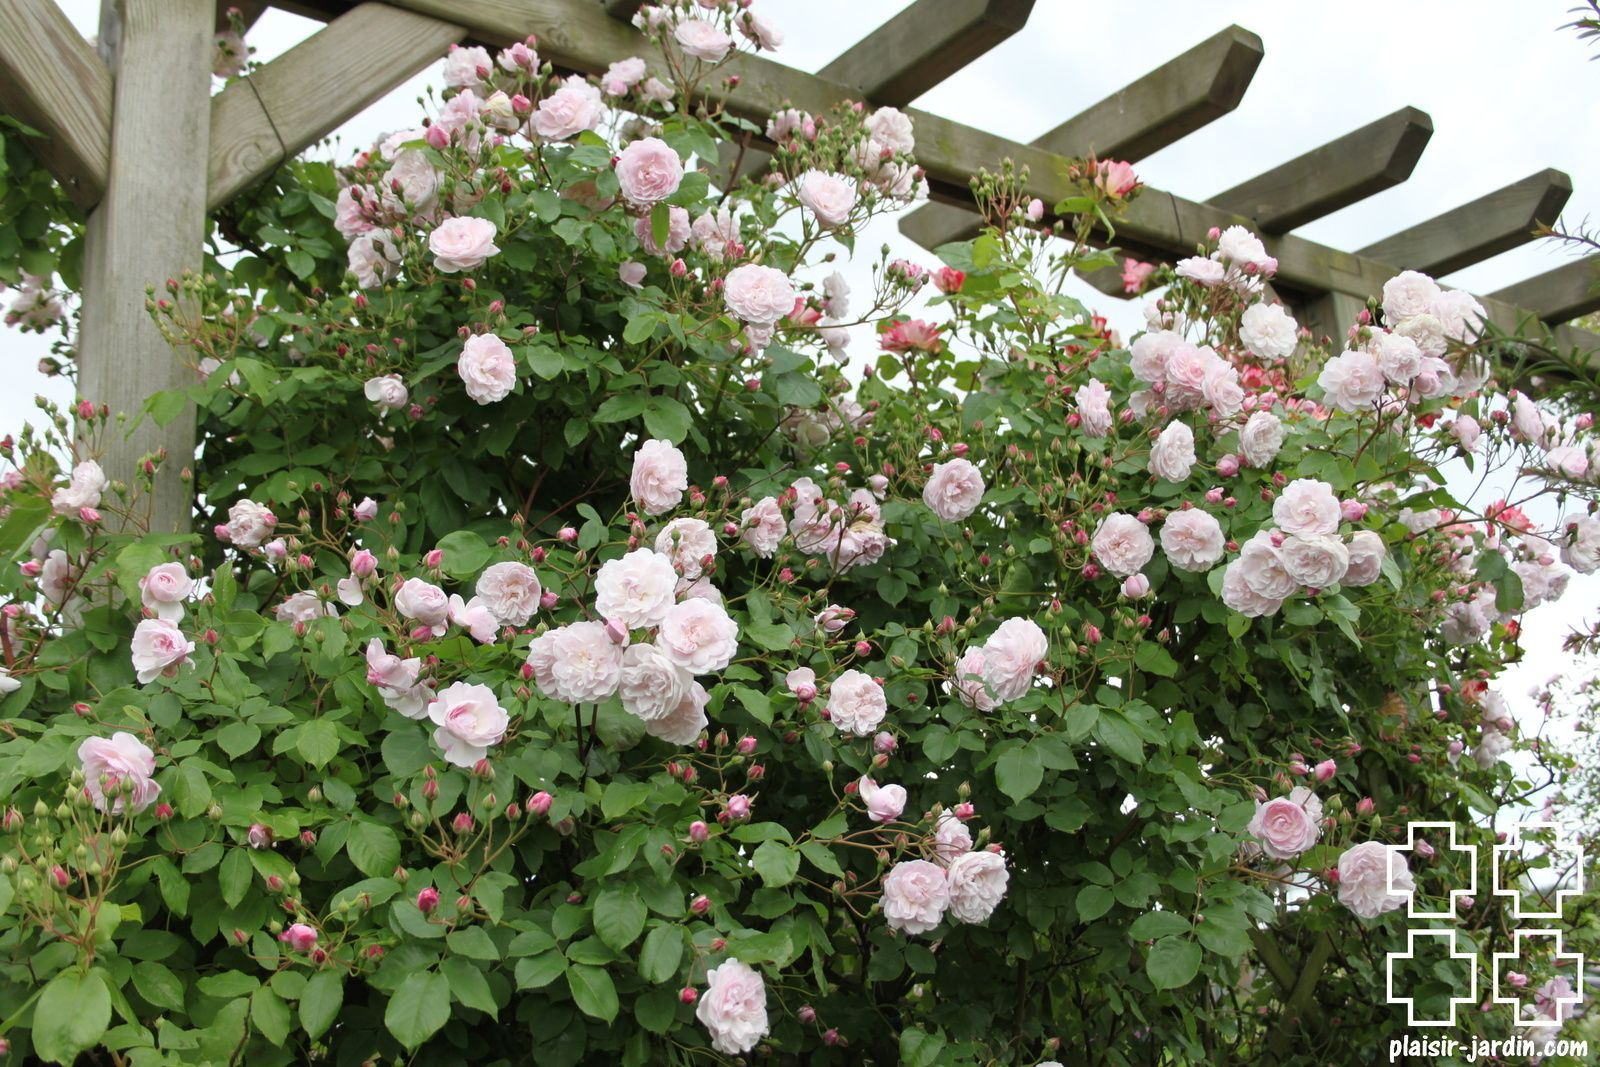 Le Rosier Blush Noisette In 2020 With Images Rose Plants Garden